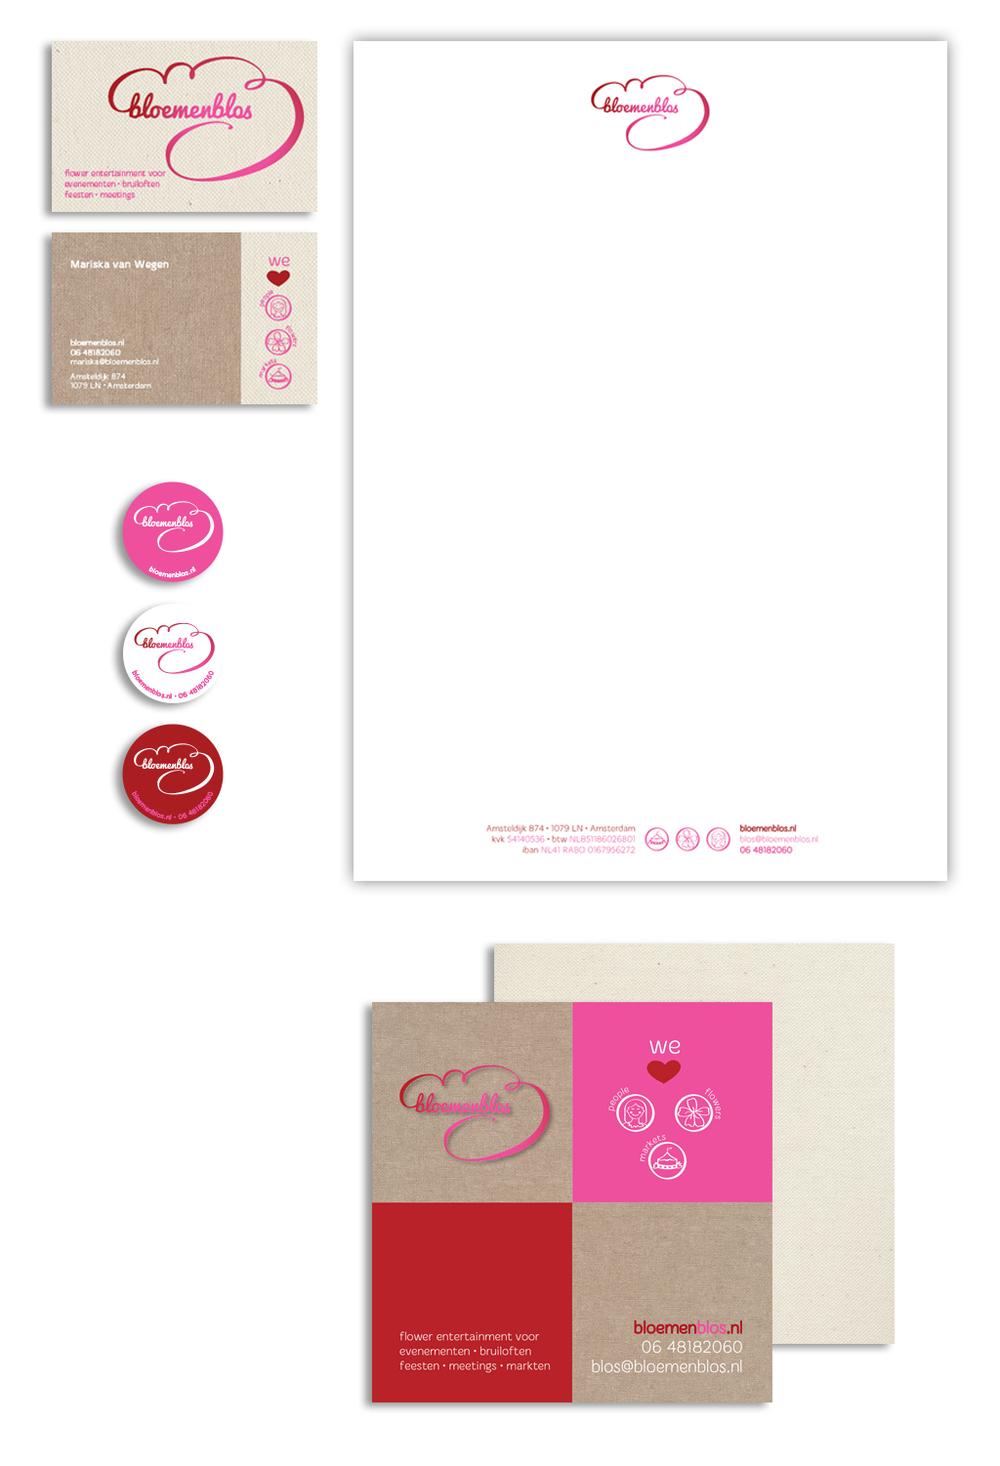 Stationery: business cards, letterhead, stickers, postcard